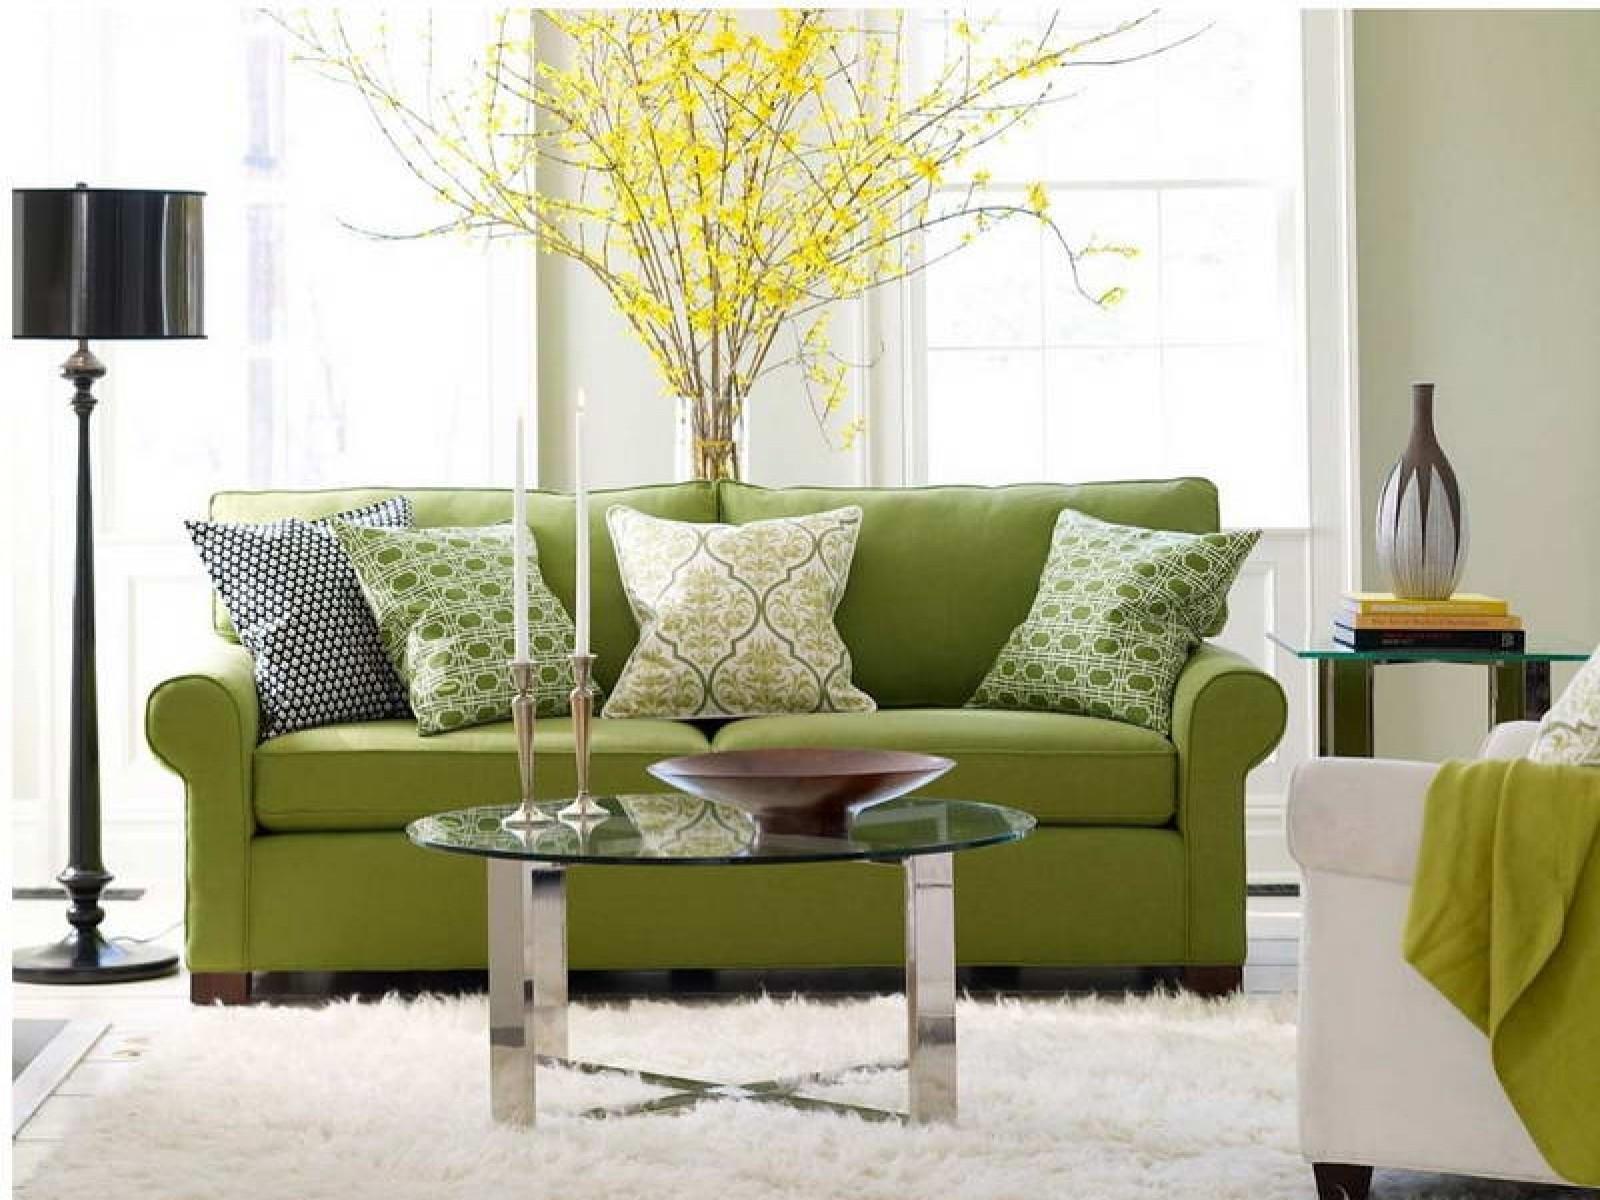 Tropical Style sofa throws ideas Klaussner Brand - Fall trends The Best Fall Trends to Improve Your Living Room Decoration The Best Fall Trends to Improve Your Living Room Decoration2